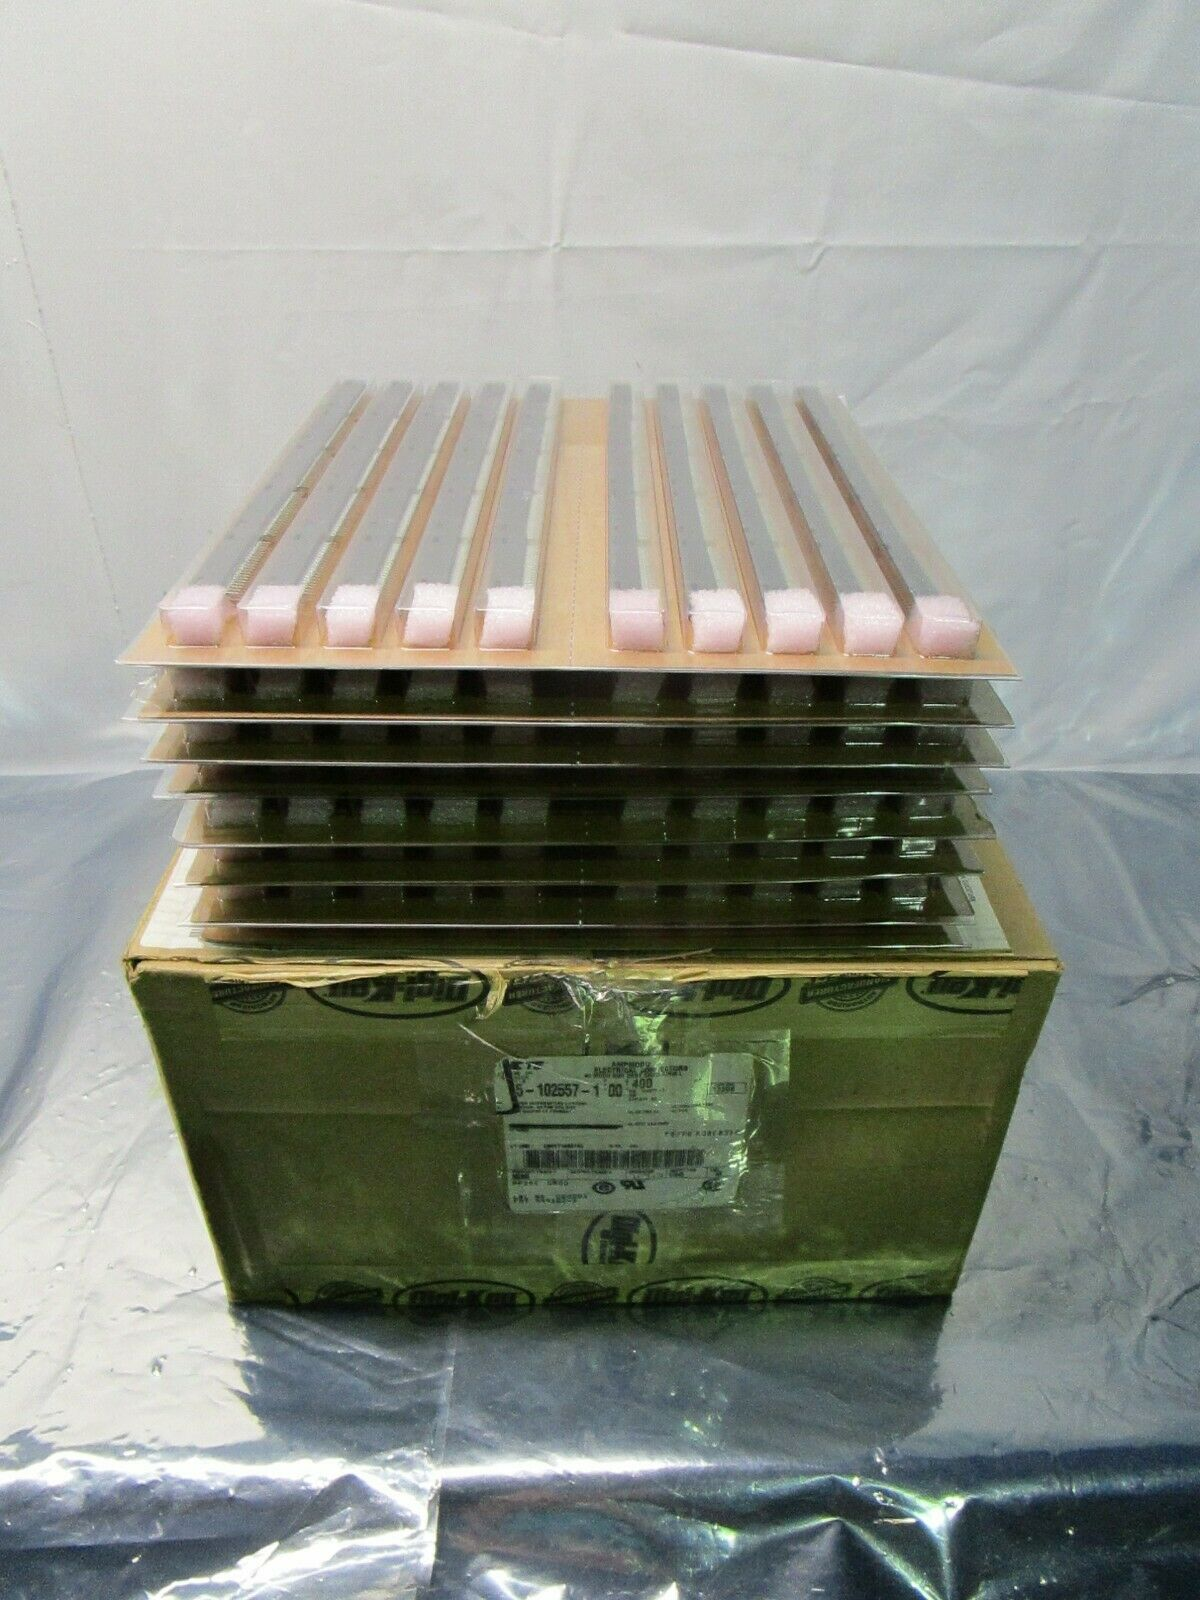 1 Lot of 400 TE Connectivity 5-102557-1 Headers & Wire Housings HDR VT, 102594